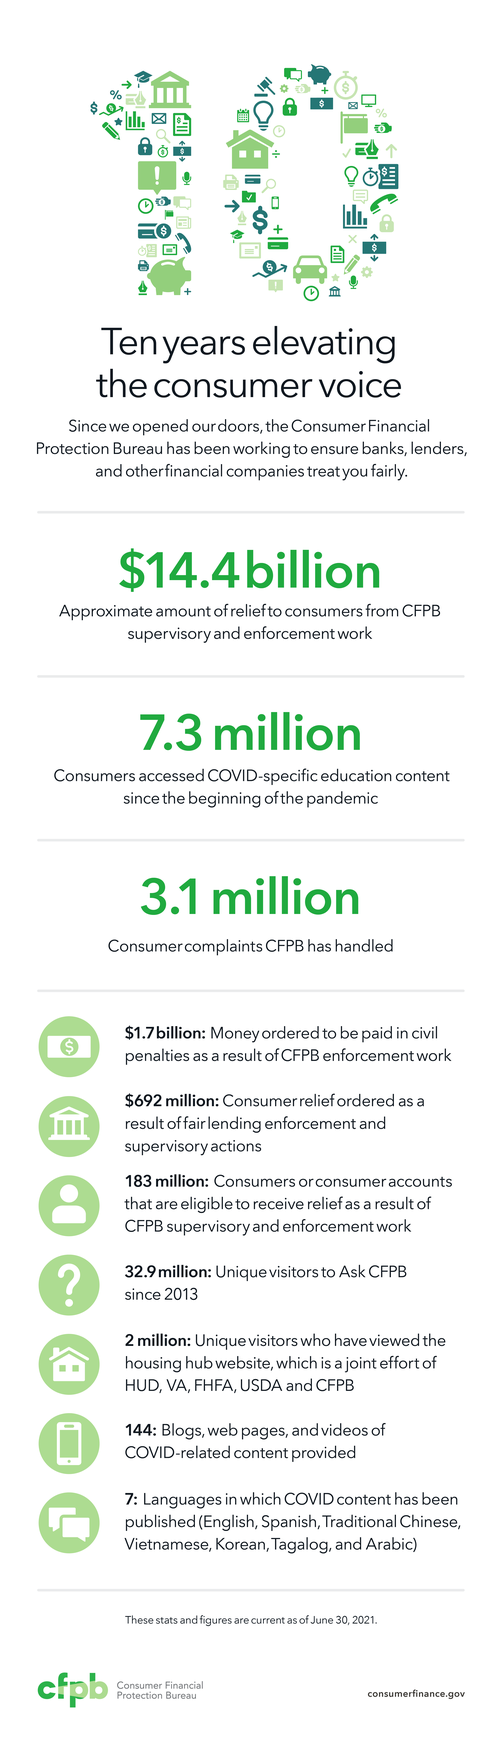 Image outlining accomplishments over the past ten years, to include $14.4 billion in relief to consumers, 7.3 million consumers accessing COVID-specific content, and handling of 3.1 million complaints.